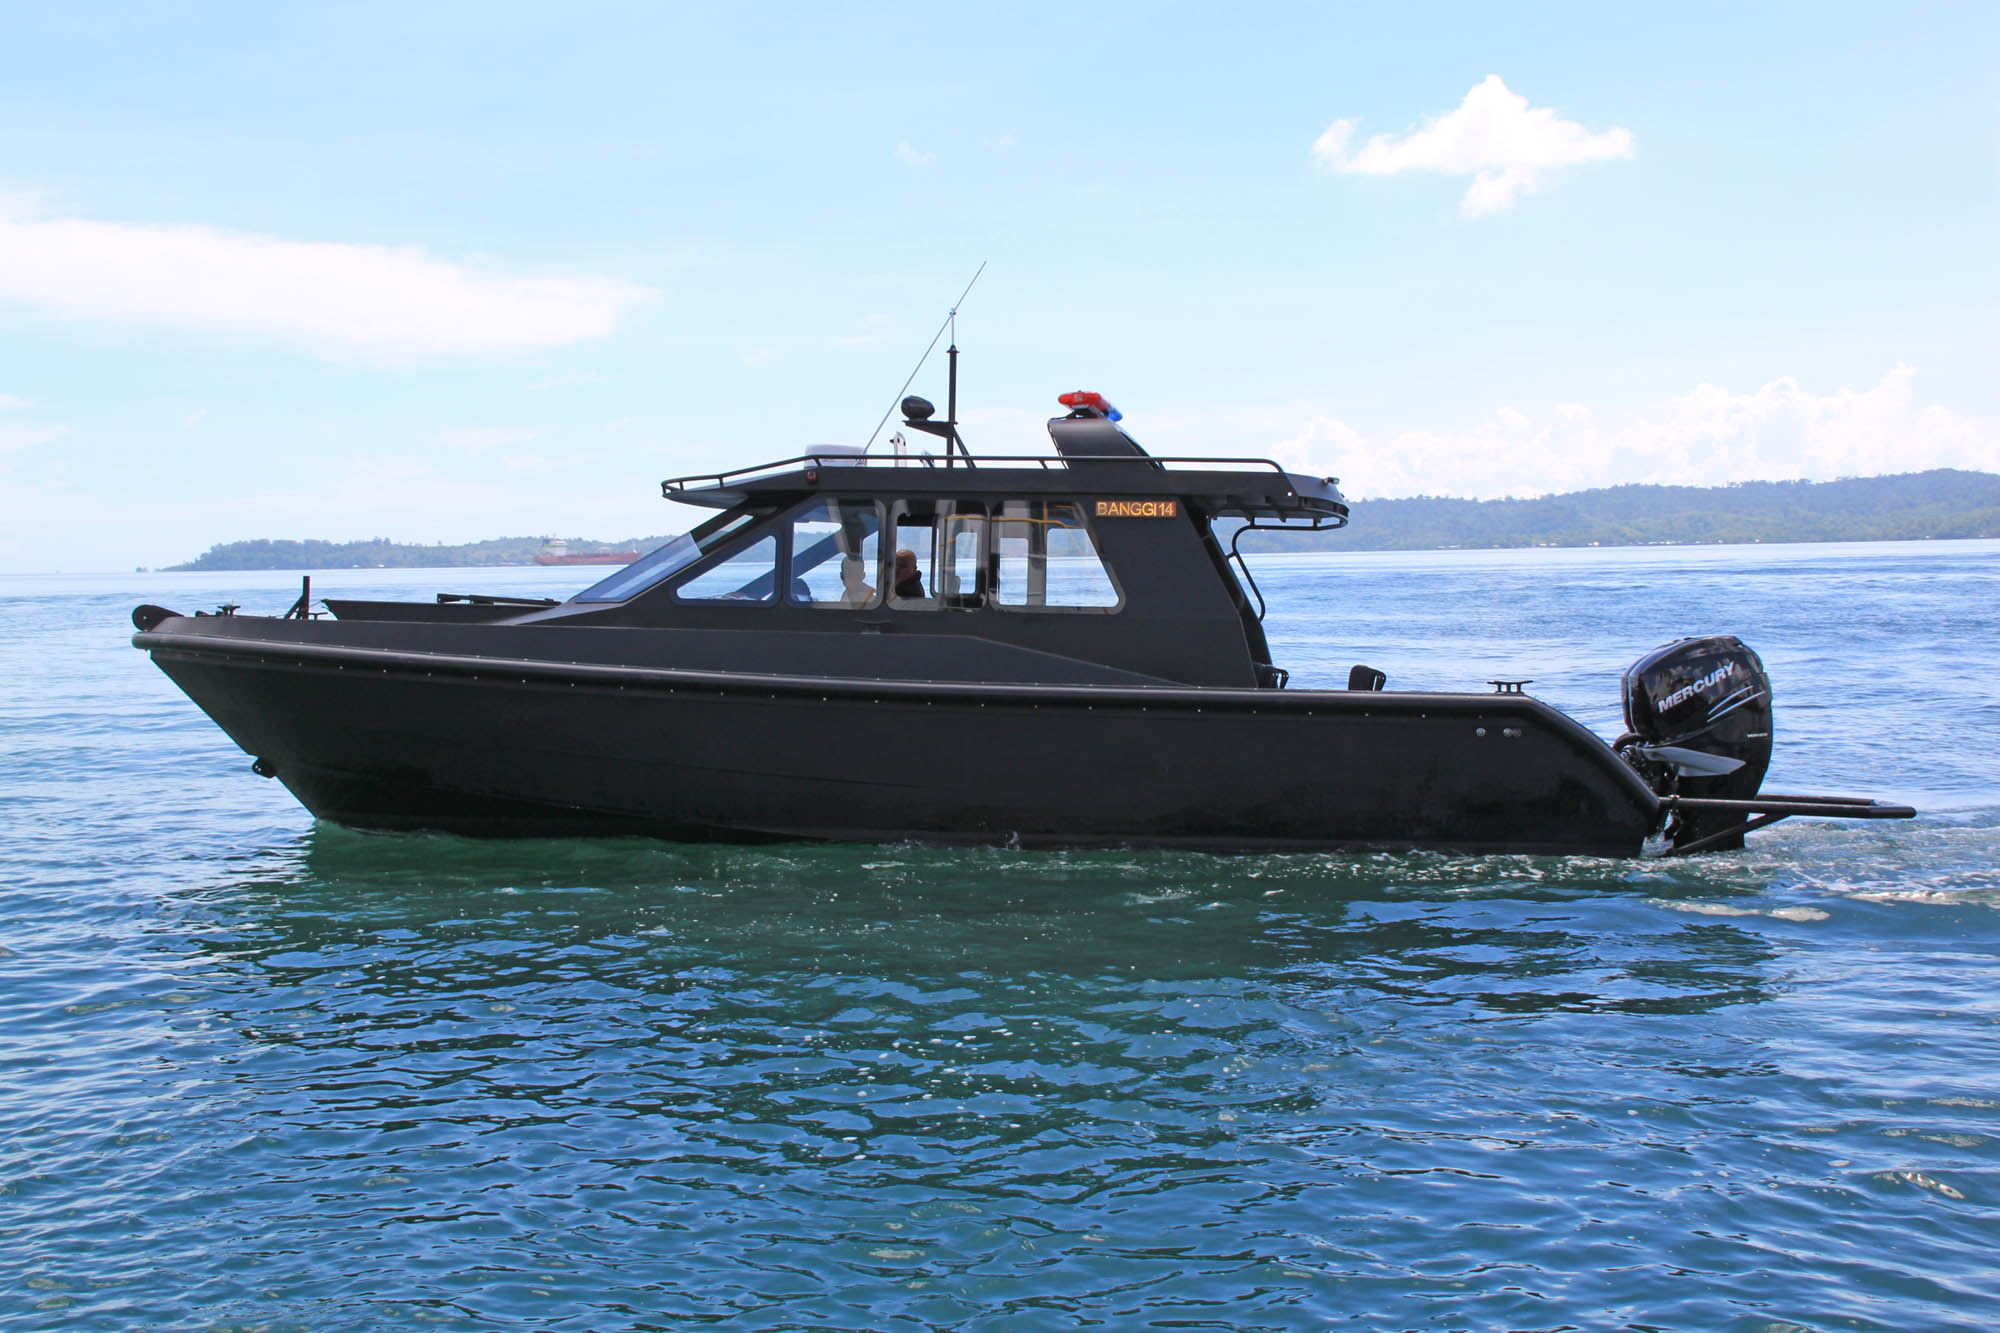 Fast Interceptor Patrol Boats